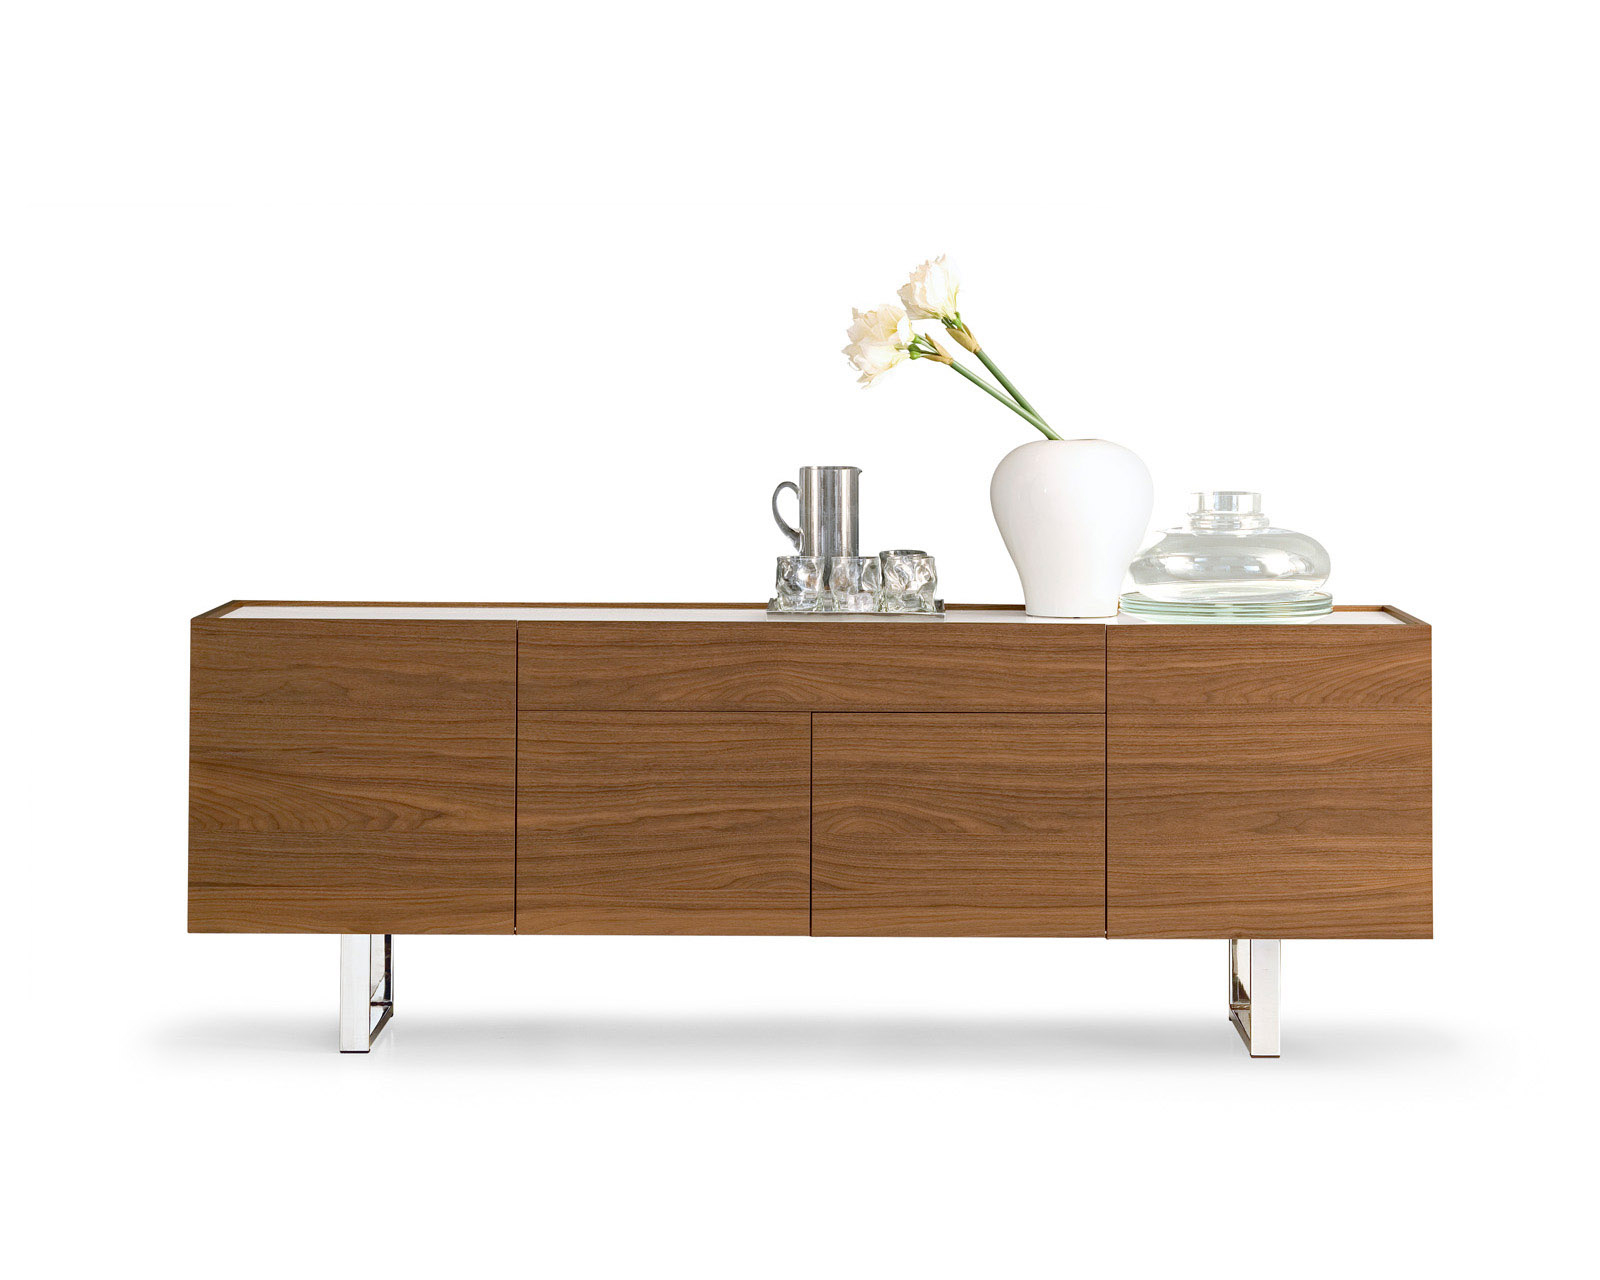 Designer Furniture Golden Gate Plaza Calligairs Horizon Buffet